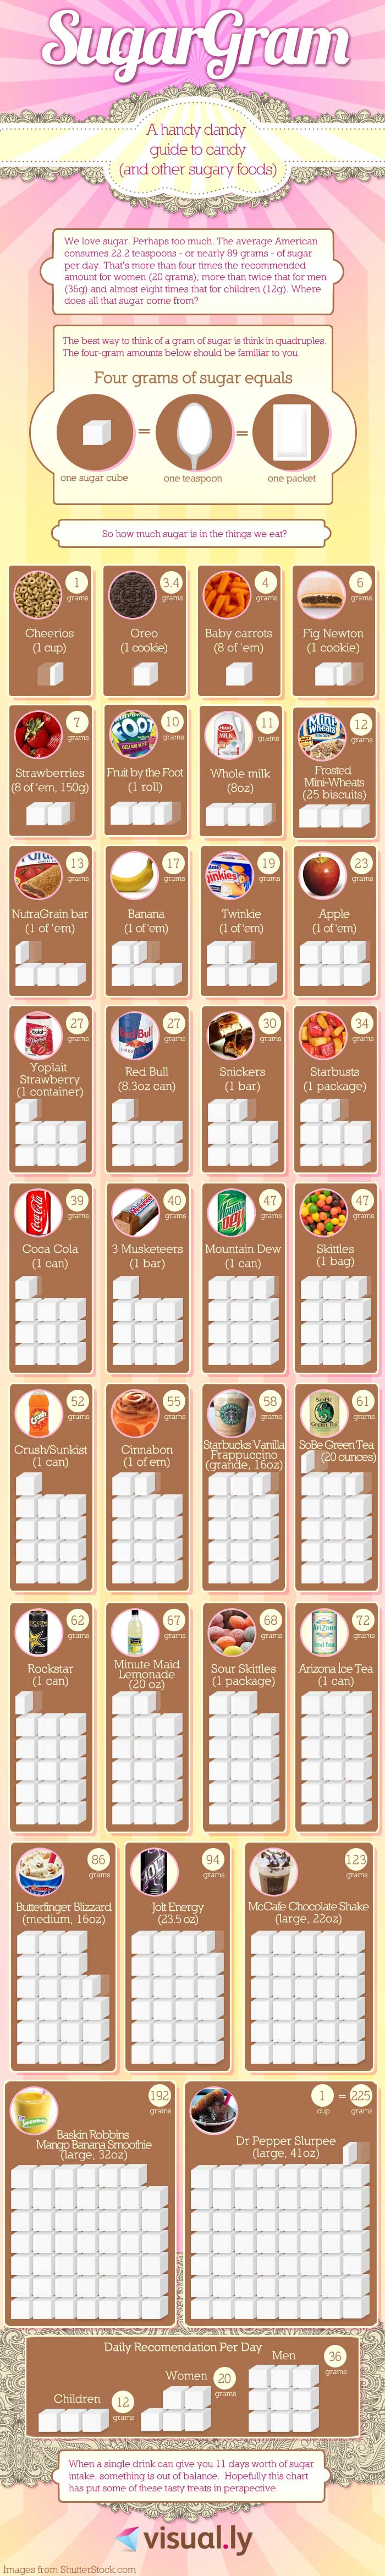 A Must-See Guide To Candy For All Sugar Lovers Infographic